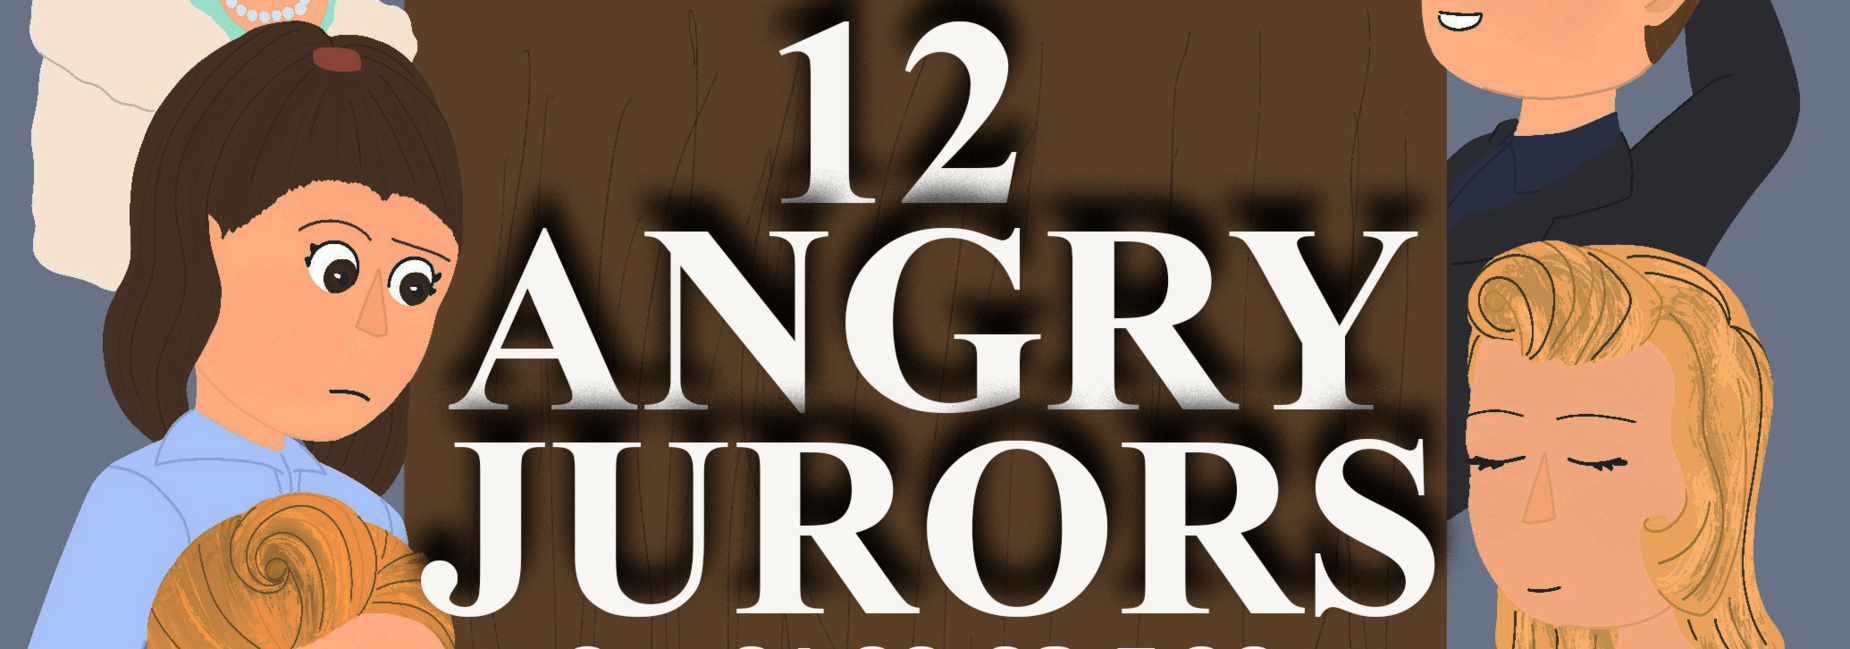 Fall play poster for 12 angry jurors